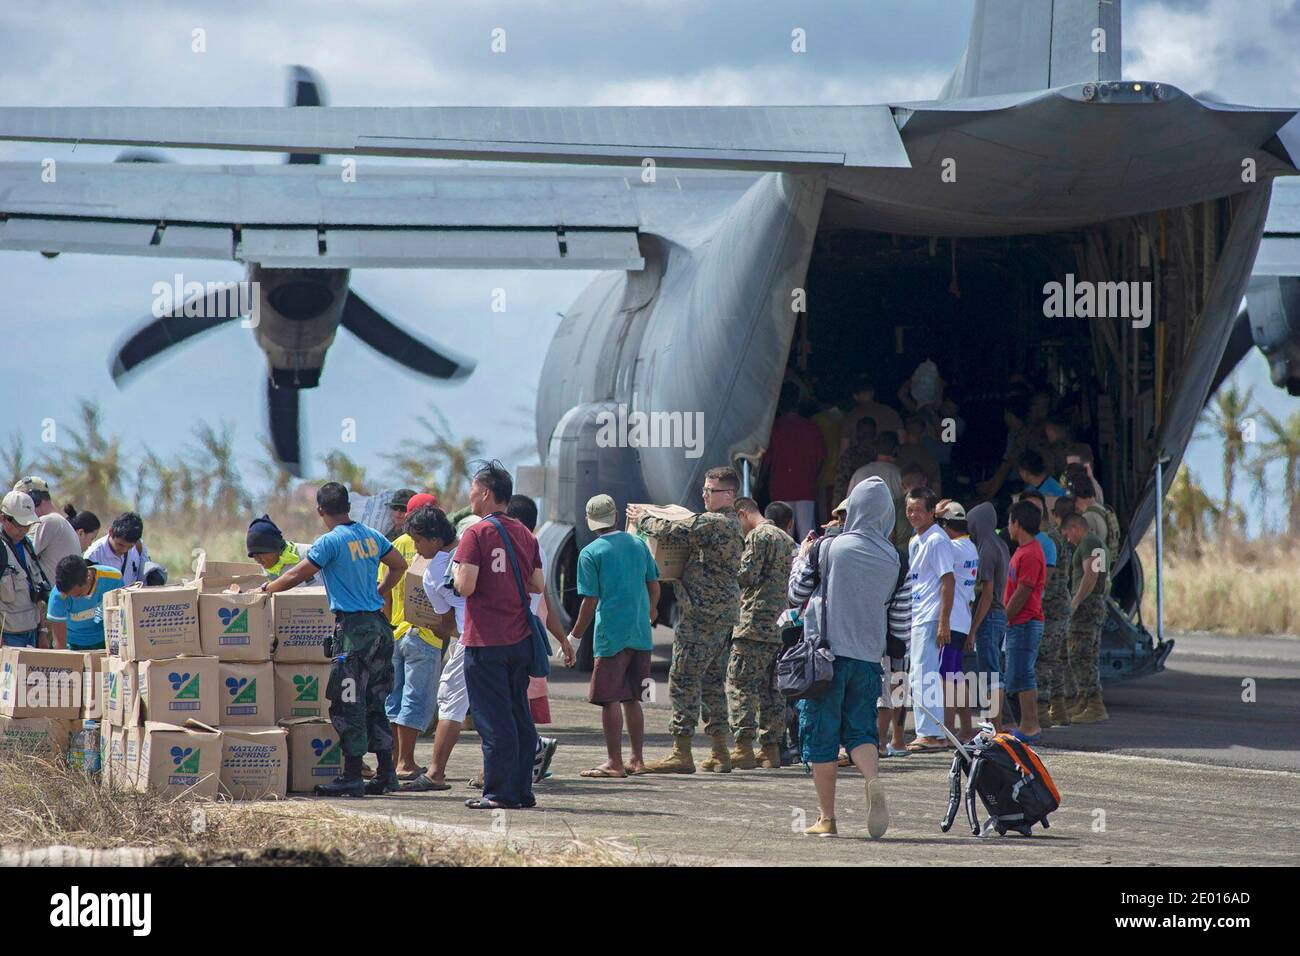 Guiuan, Eastern Samar Province, Republic of the Philippines (Nov. 16, 2013) Sailors from the U.S. Navy's forward-deployed aircraft carrier USS George Washington (CVN 73) alongside Marines and Filipino civilians help unload supplies from an HC-130 Hercules from Marine Wing Support Squadron (MWSS) 172 in support of Operation Damayan. The George Washington Strike Group supports the 3rd Marine Expeditionary Brigade to assist the Philippine government in response to the aftermath of the Super Typhoon Haiyan in the Republic of the Philippines. Photo by US Navy via ABACAPRESS.COM Stock Photo